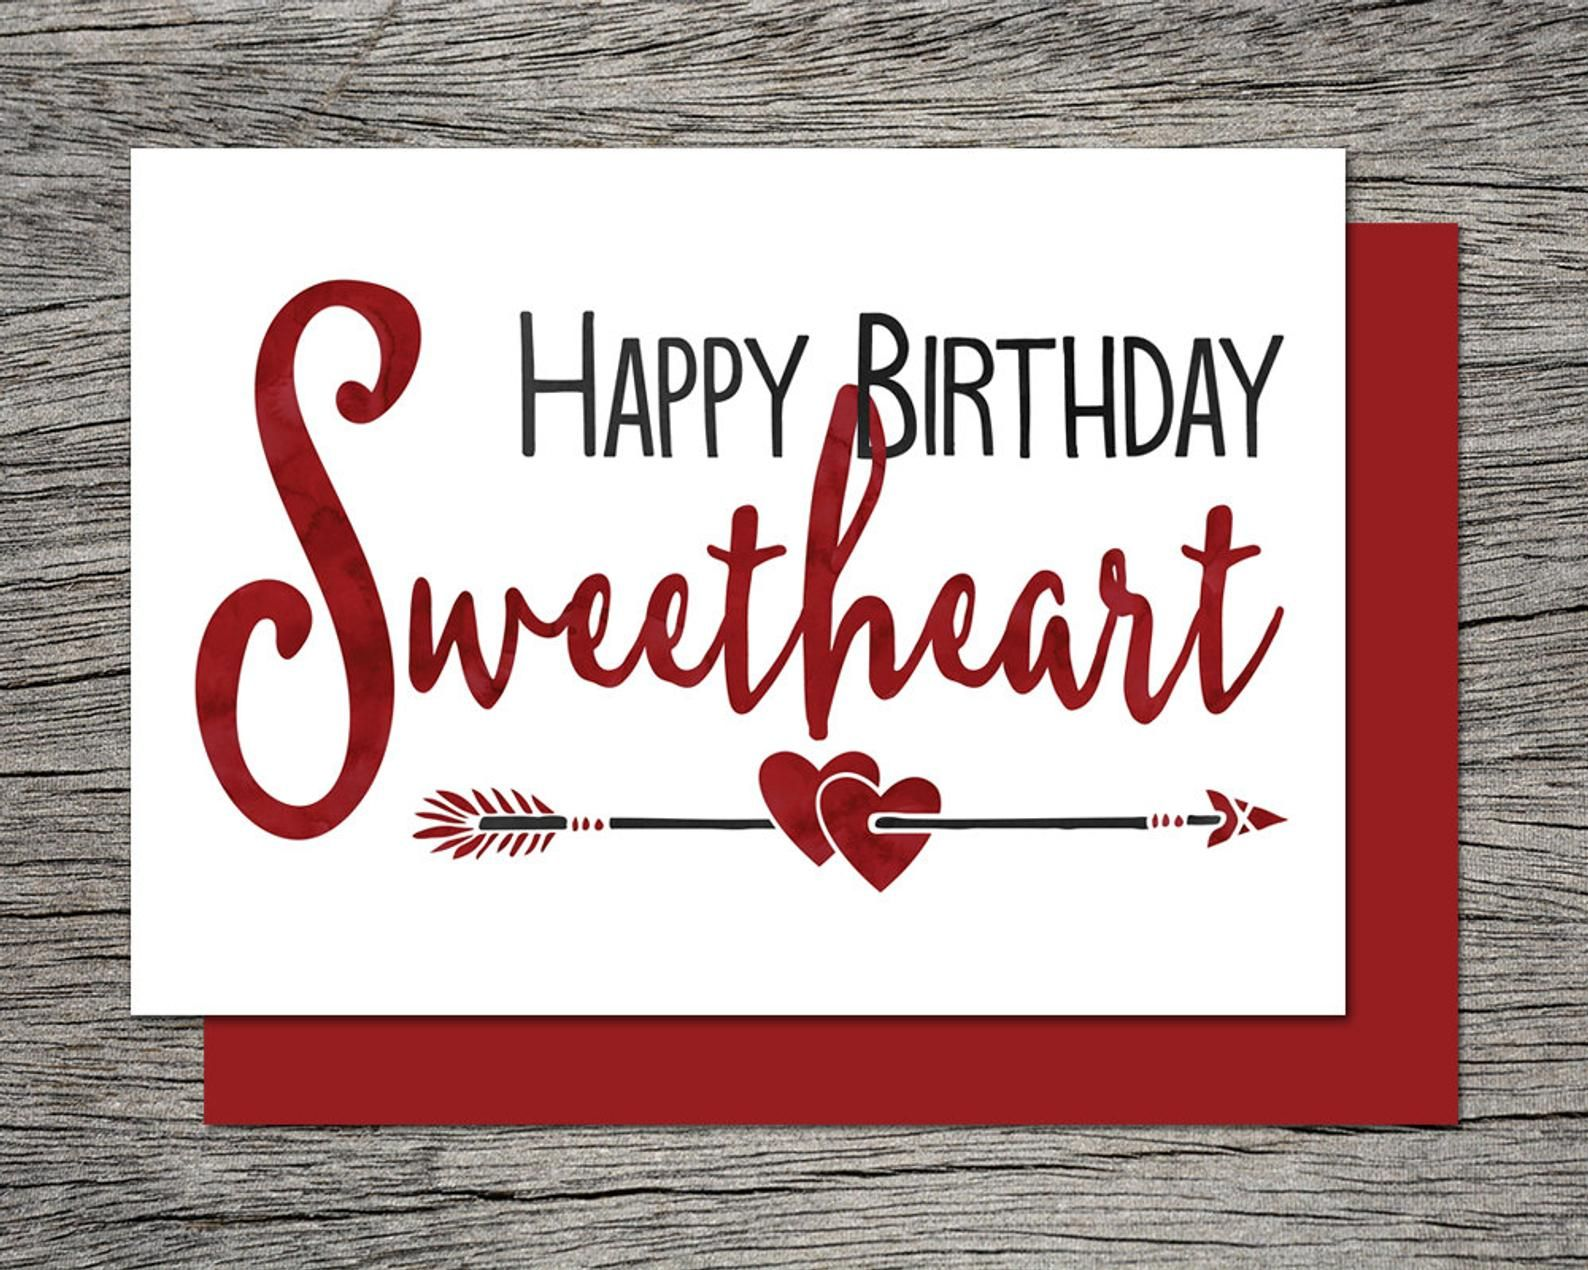 Heart Birthday Card For Girlfriend With Name Generator Cards With Name G Birthday Cards For Girlfriend Birthday Wishes For Girlfriend Birthday Card With Name